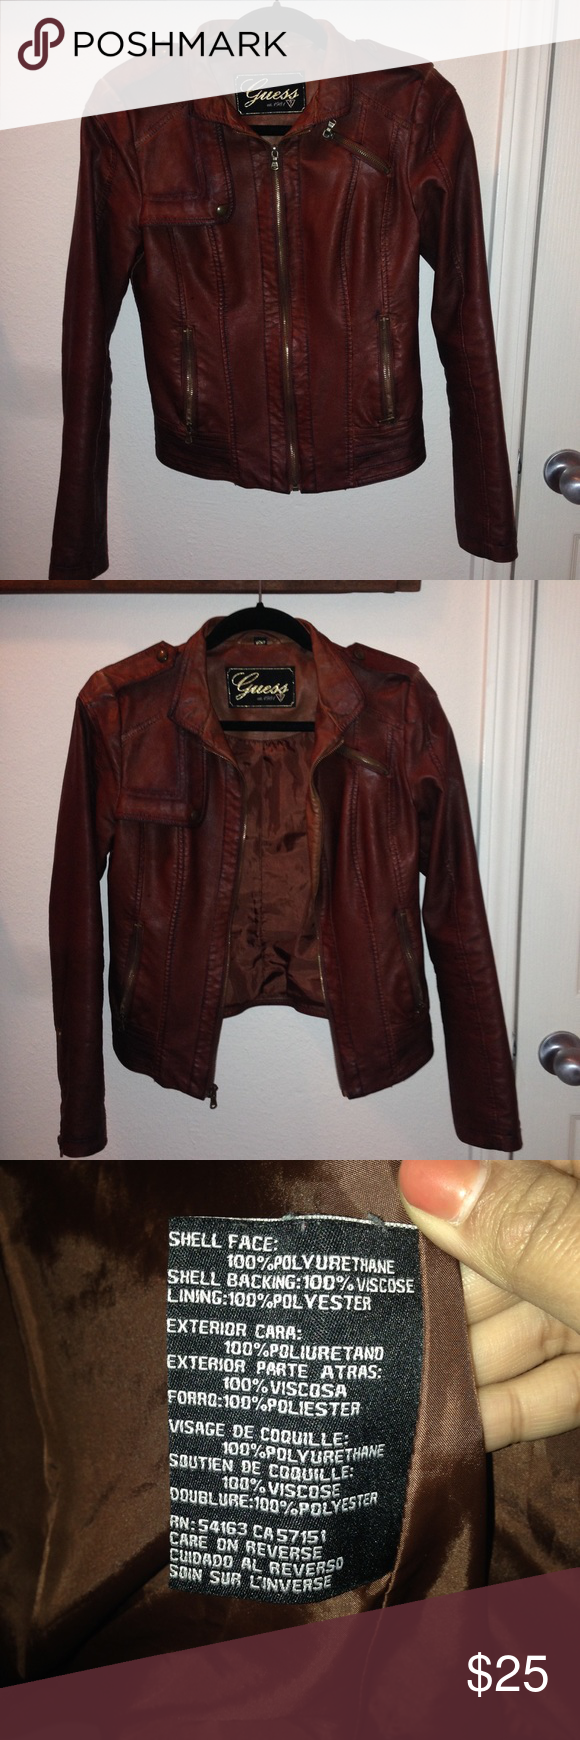 Guess Brown Faux Leather Jacket Size S Brown Faux Leather Jacket Leather Jacket Faux Leather Jackets [ 1740 x 580 Pixel ]